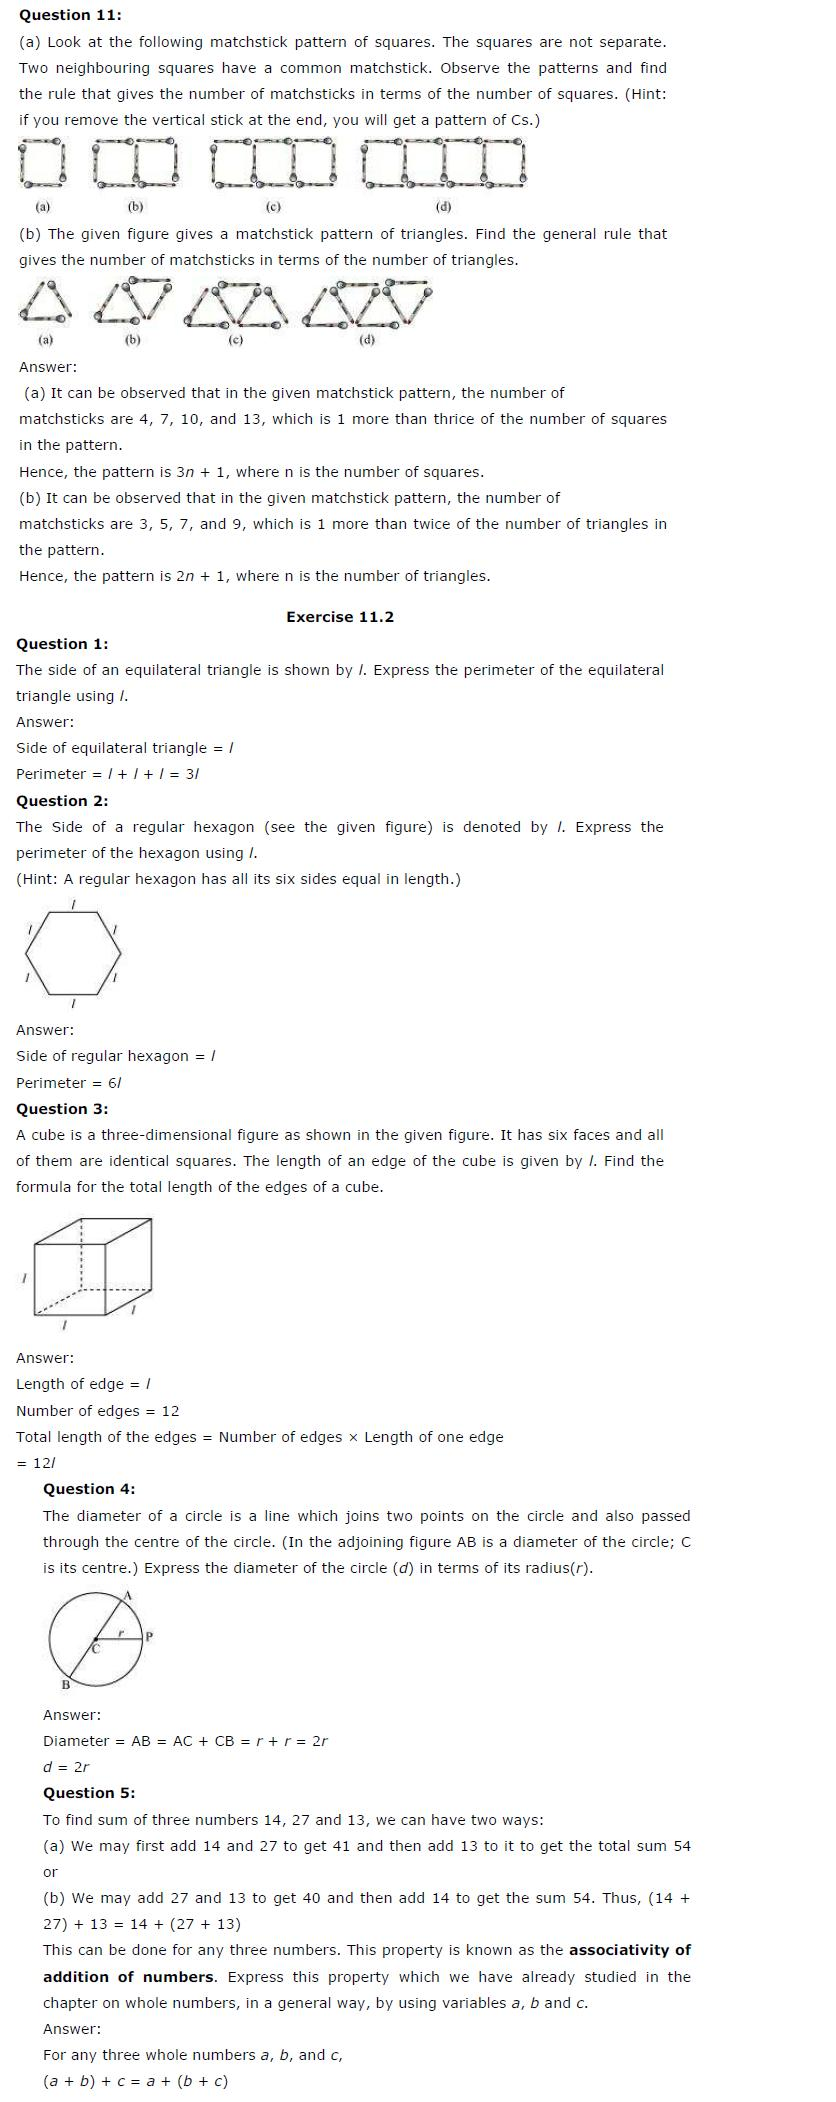 NCERT Solutions For Class 6 Maths Chapter 11 Algebra PDF